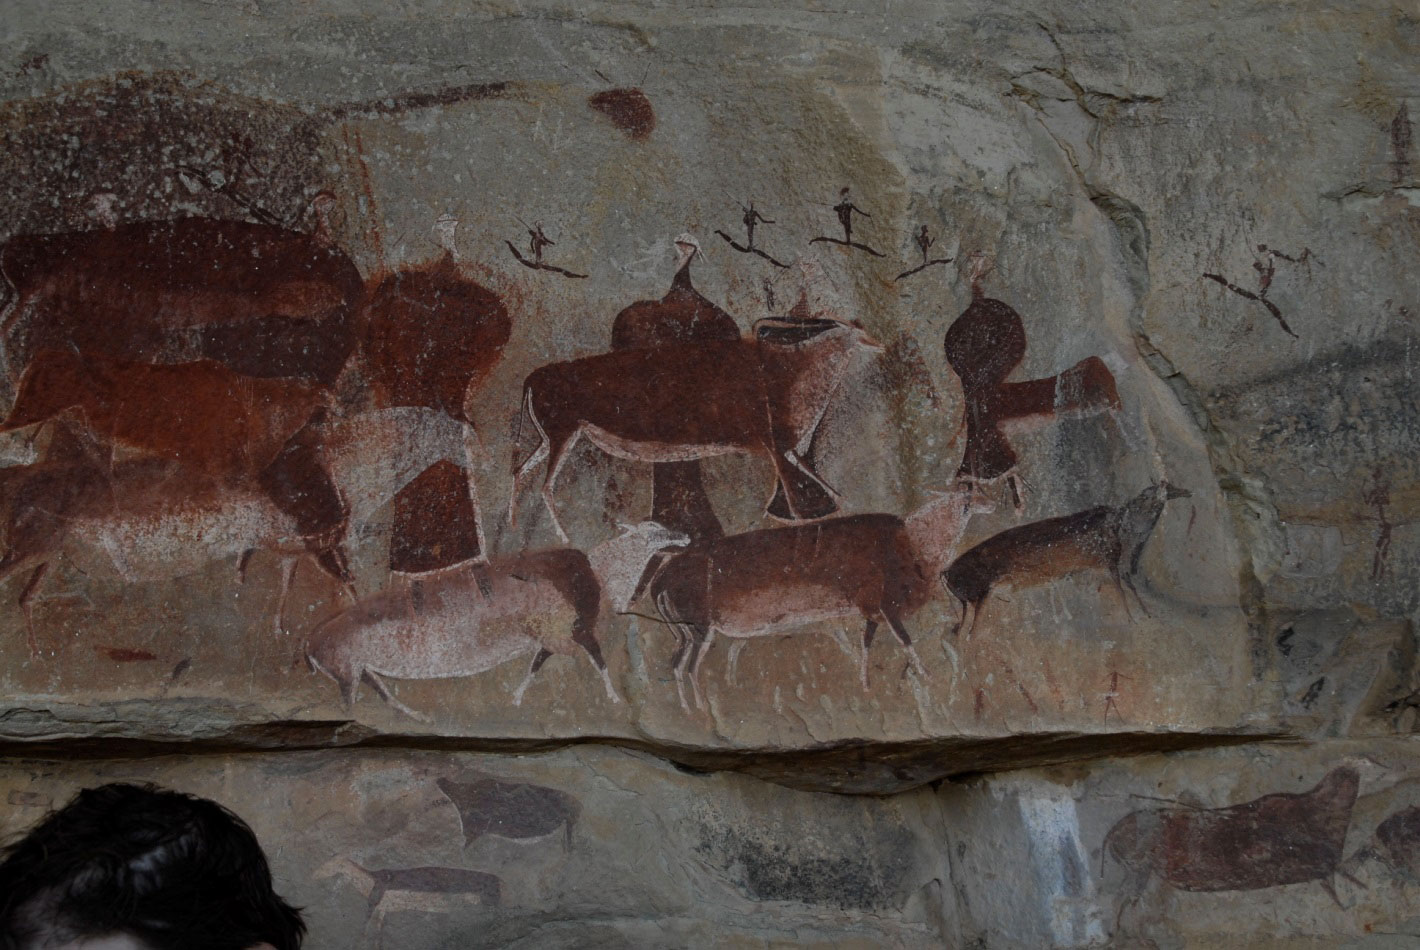 Picture of a site showing polychrome paintings of elands and human figures, in the province of KwaZulu-Natal, South Africa